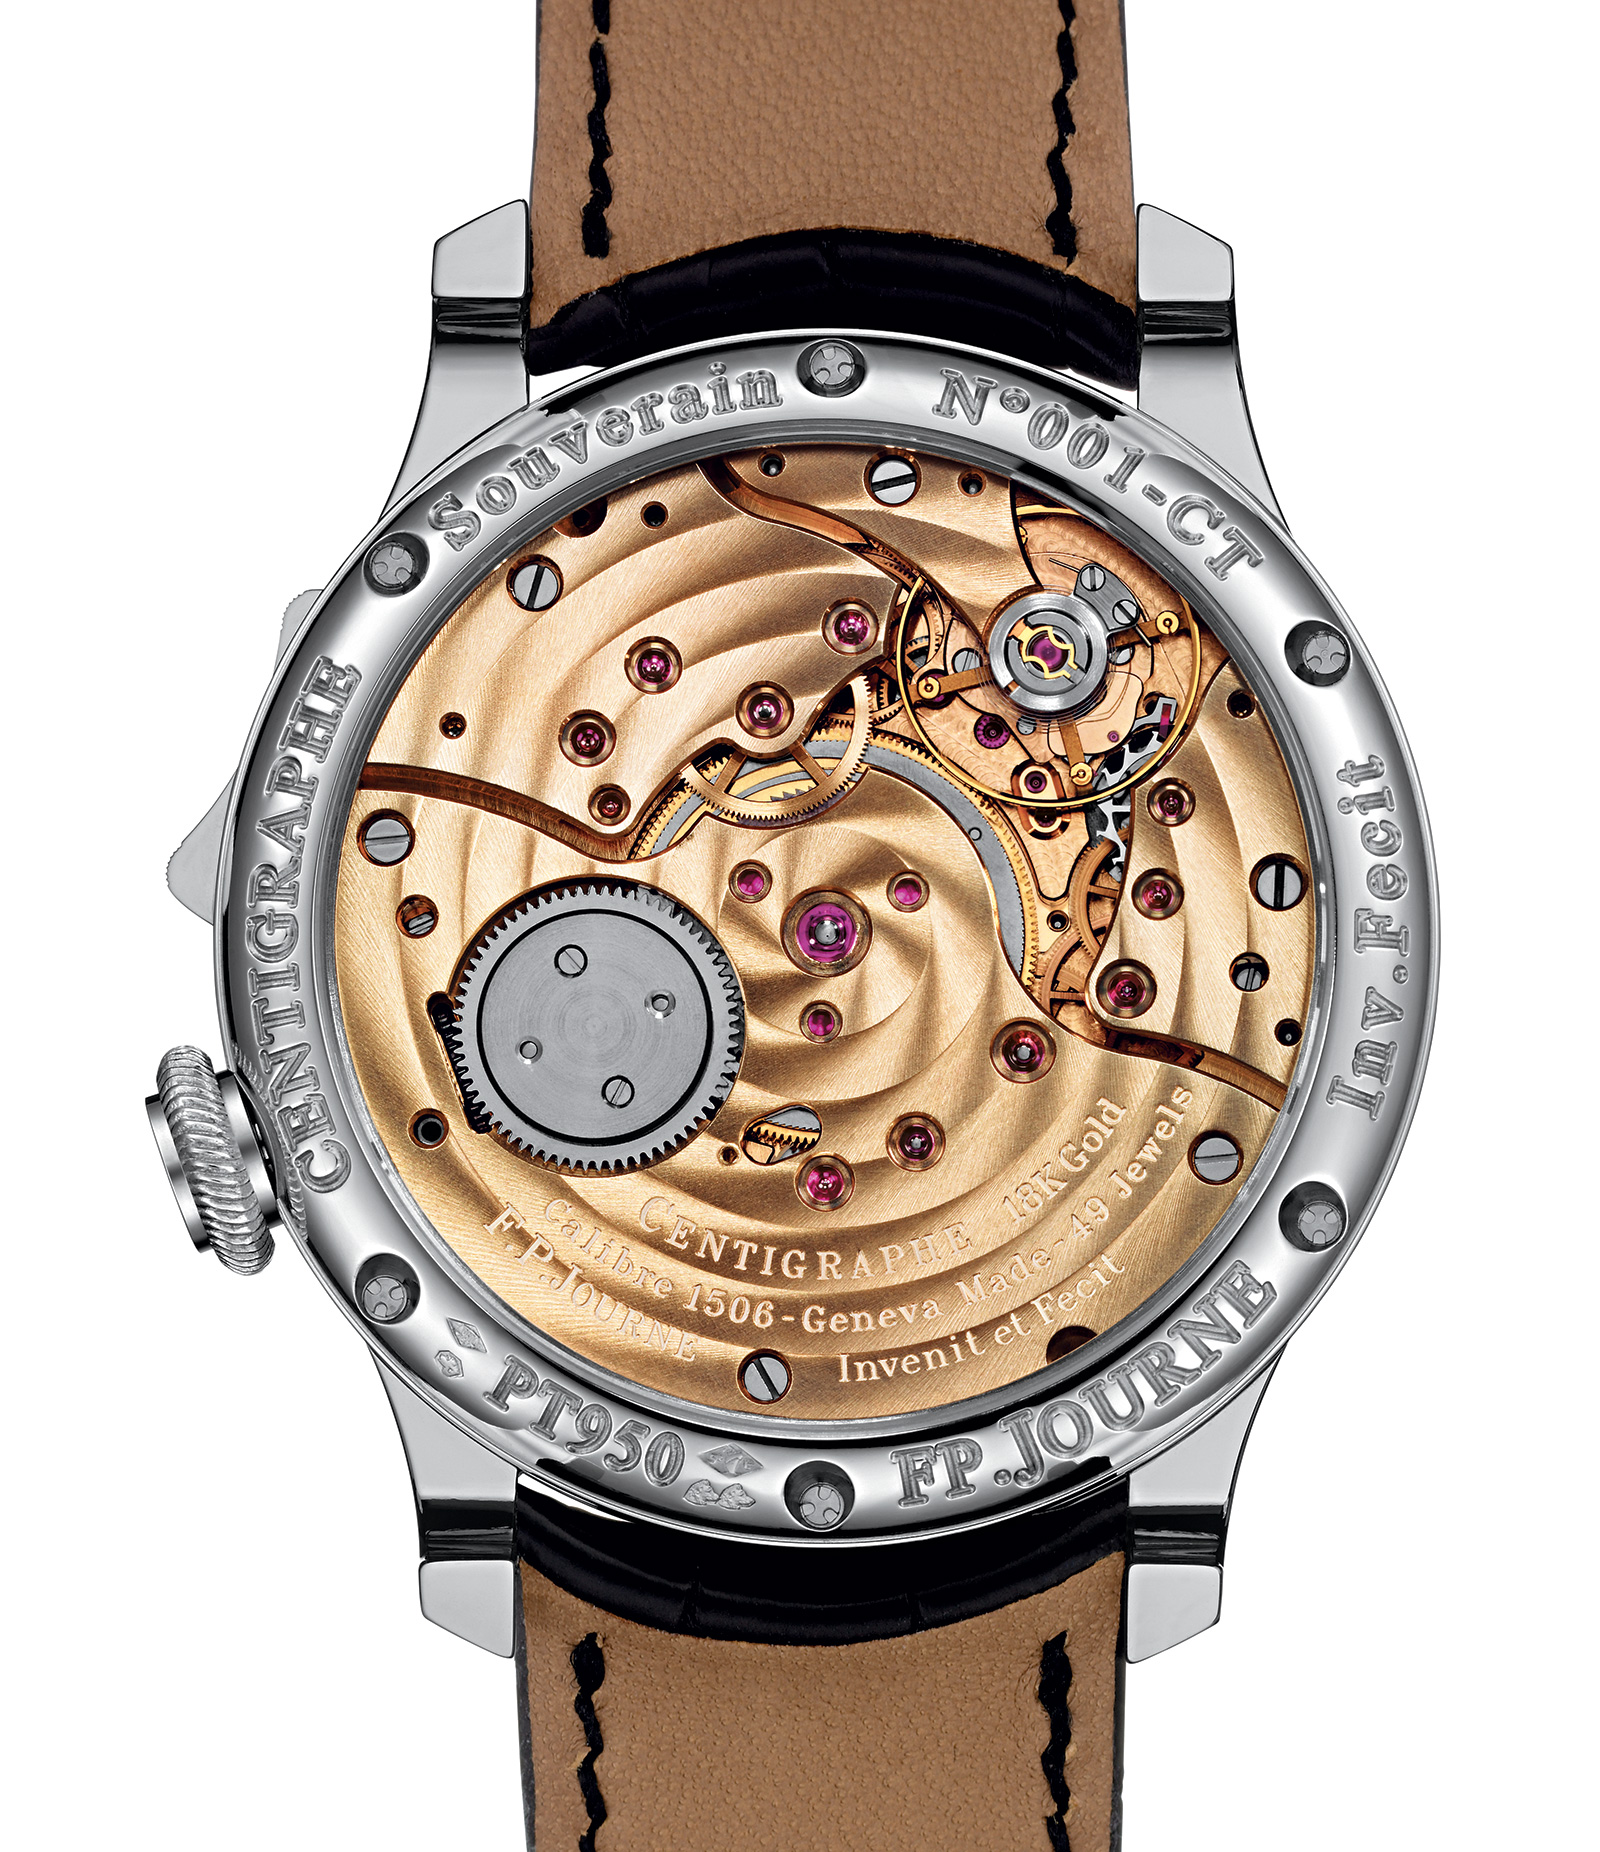 FP Journe Centigraphe platinum back